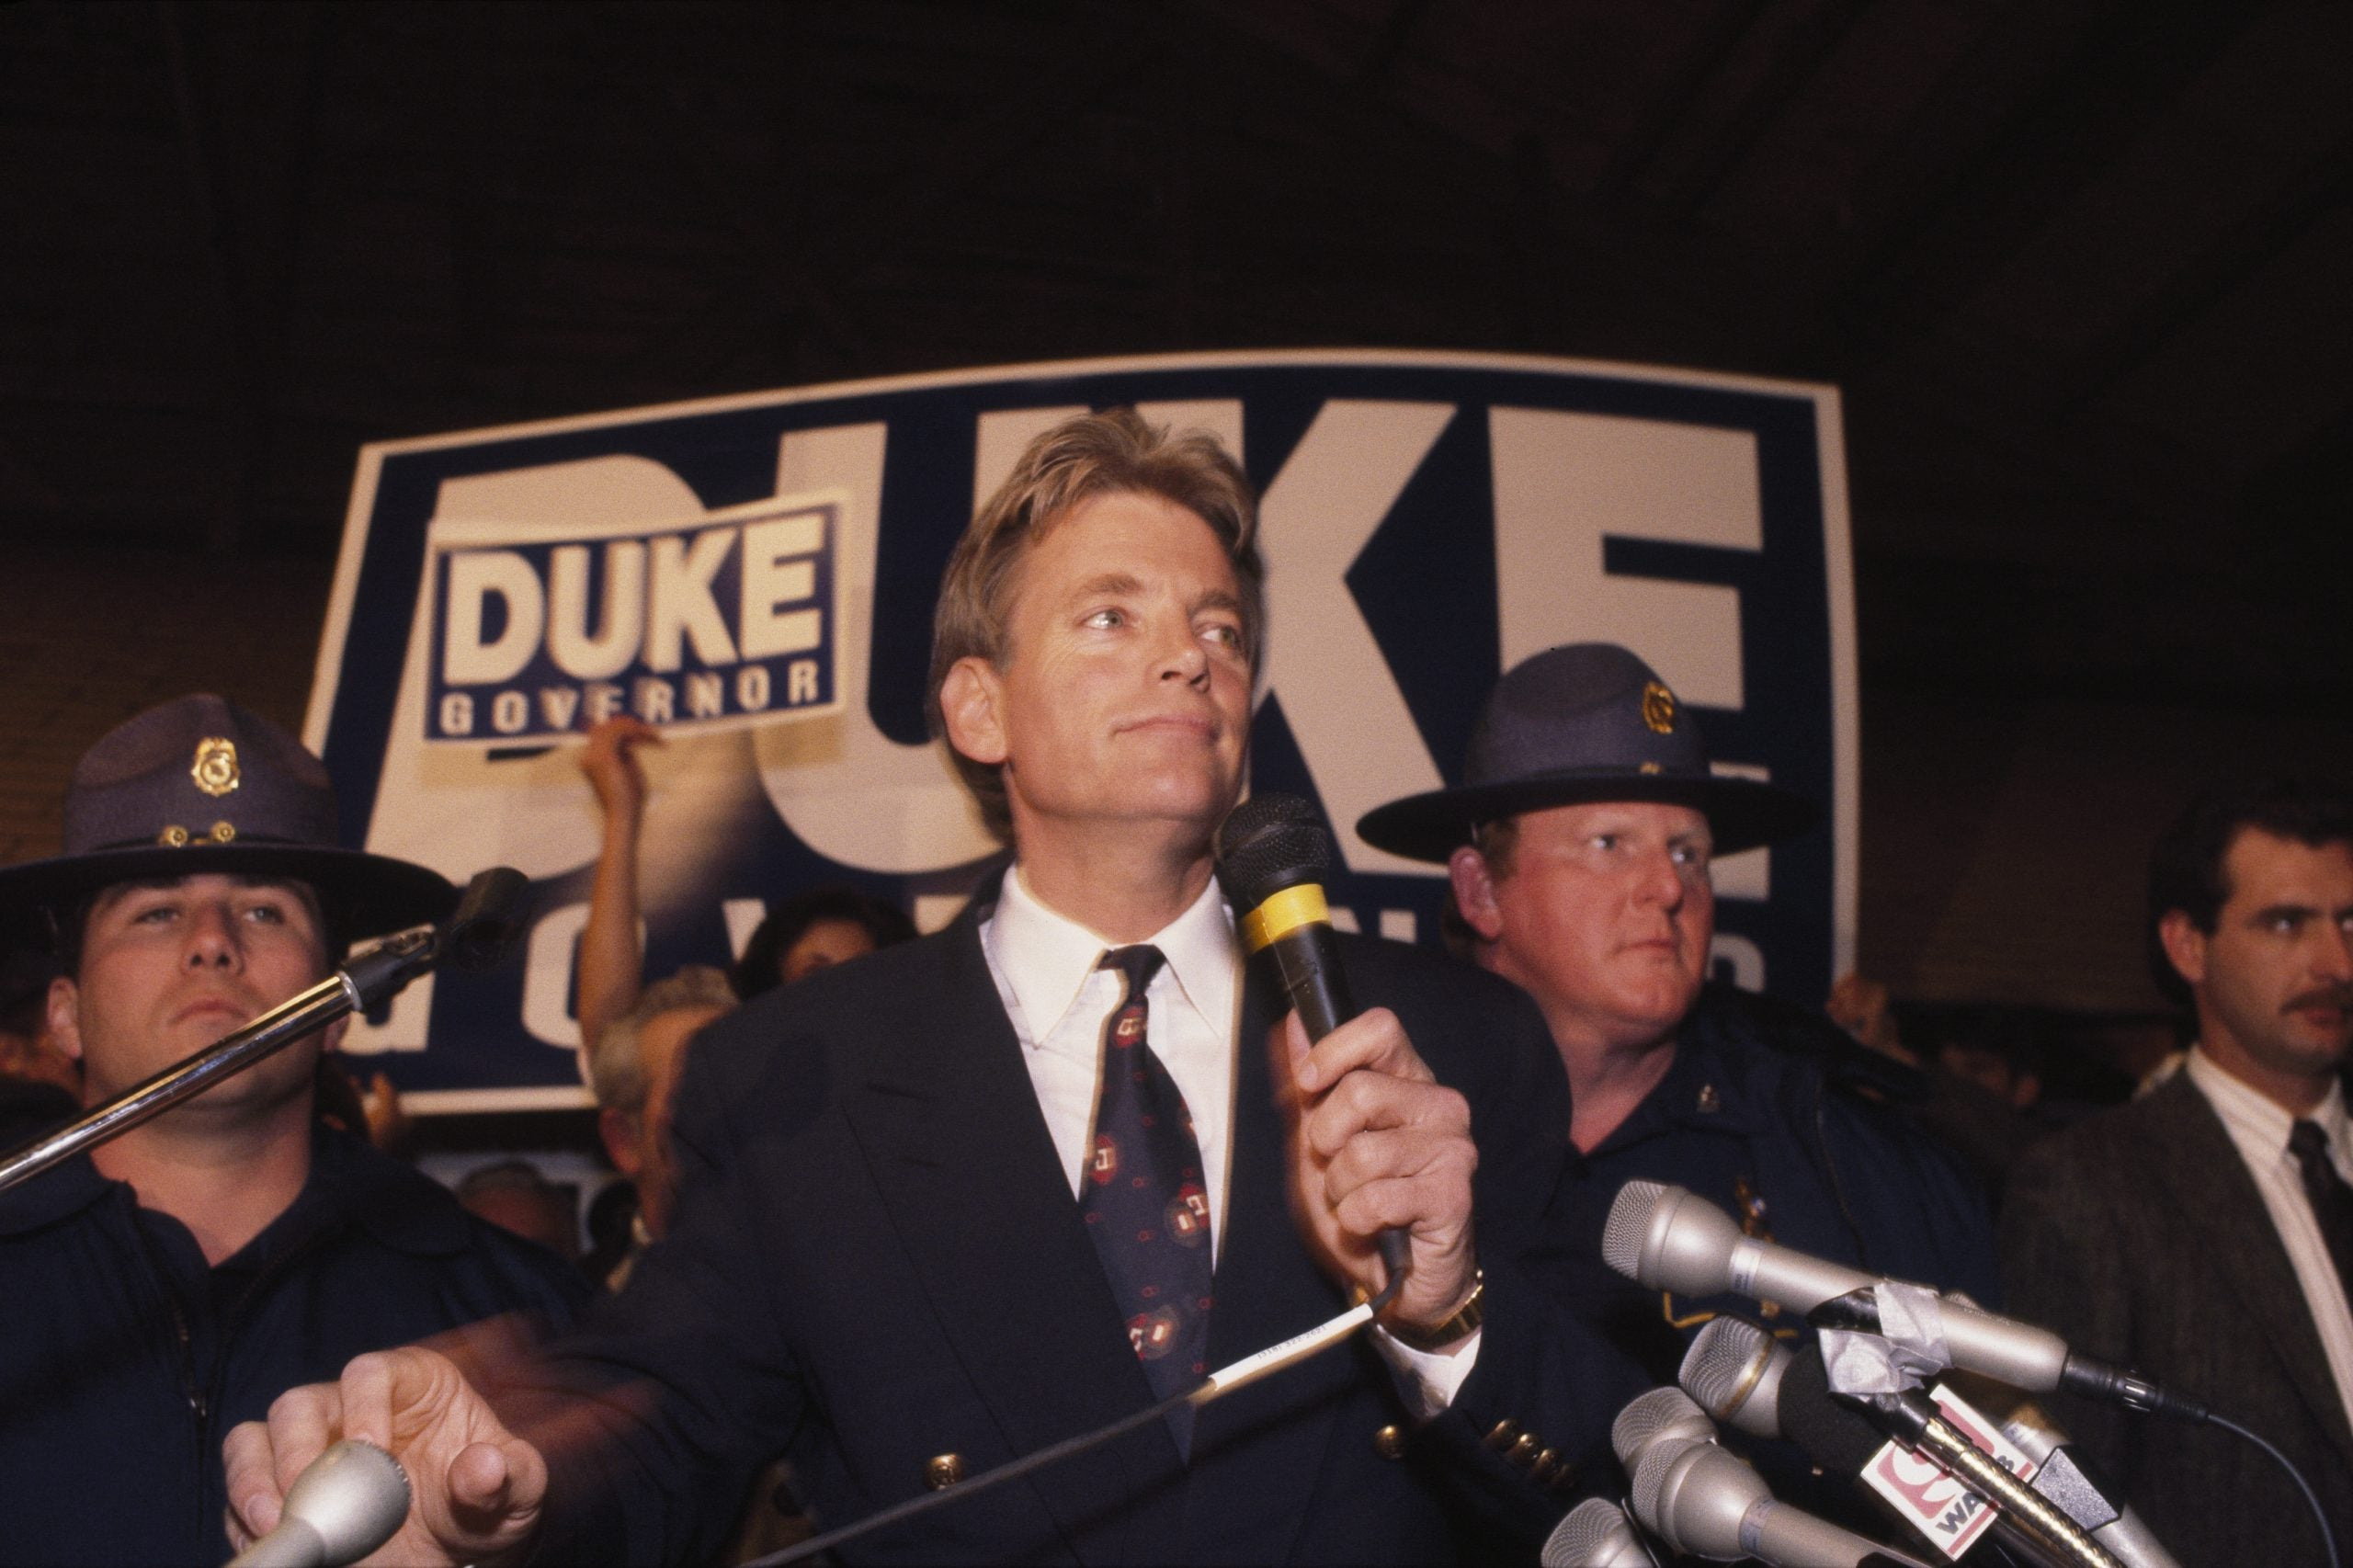 Slate's new podcast series about David Duke is perfectly calibrated